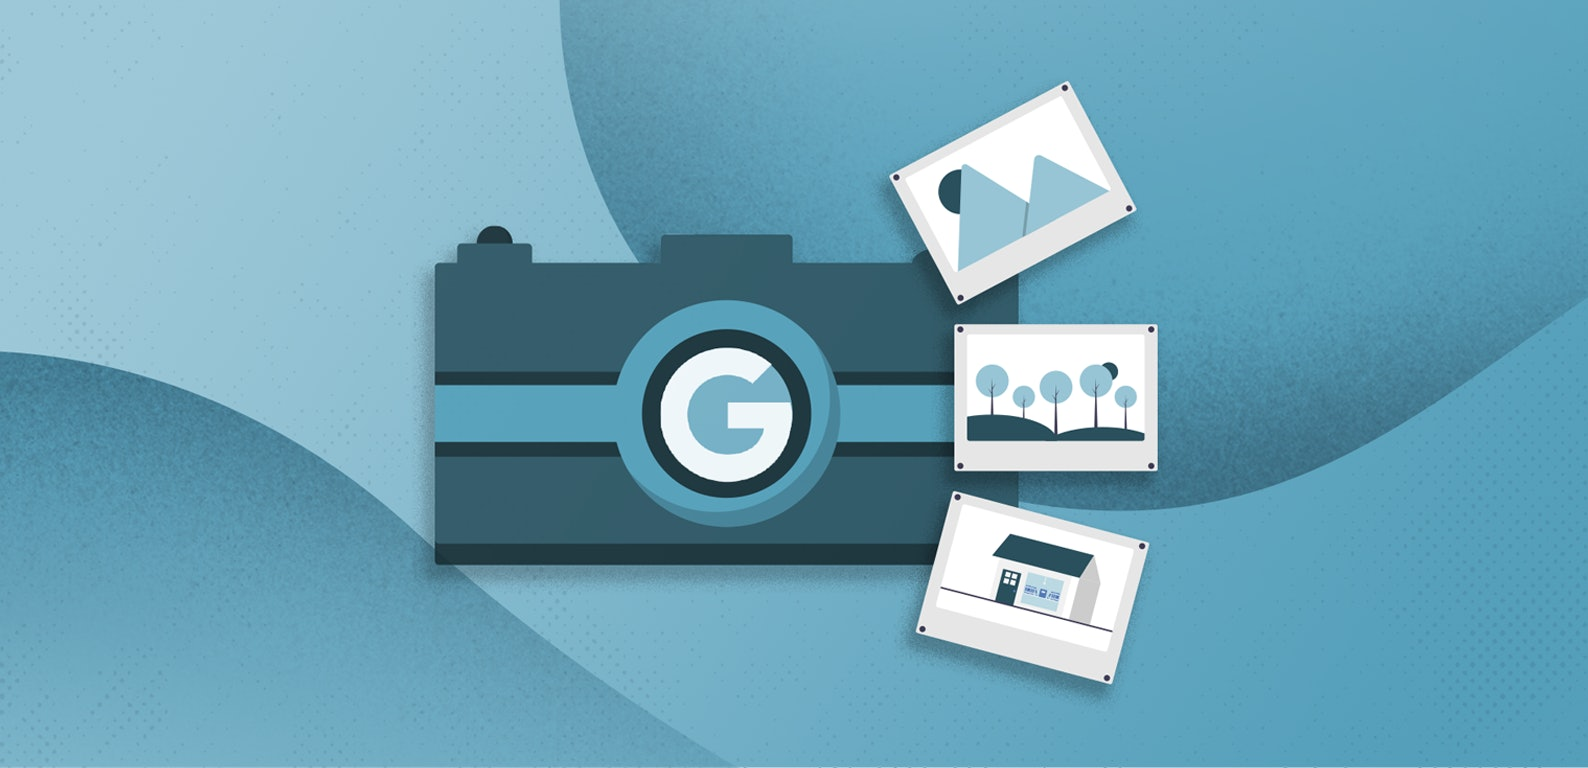 Google My Business Photos: The Ultimate Guide to Looking Good ...